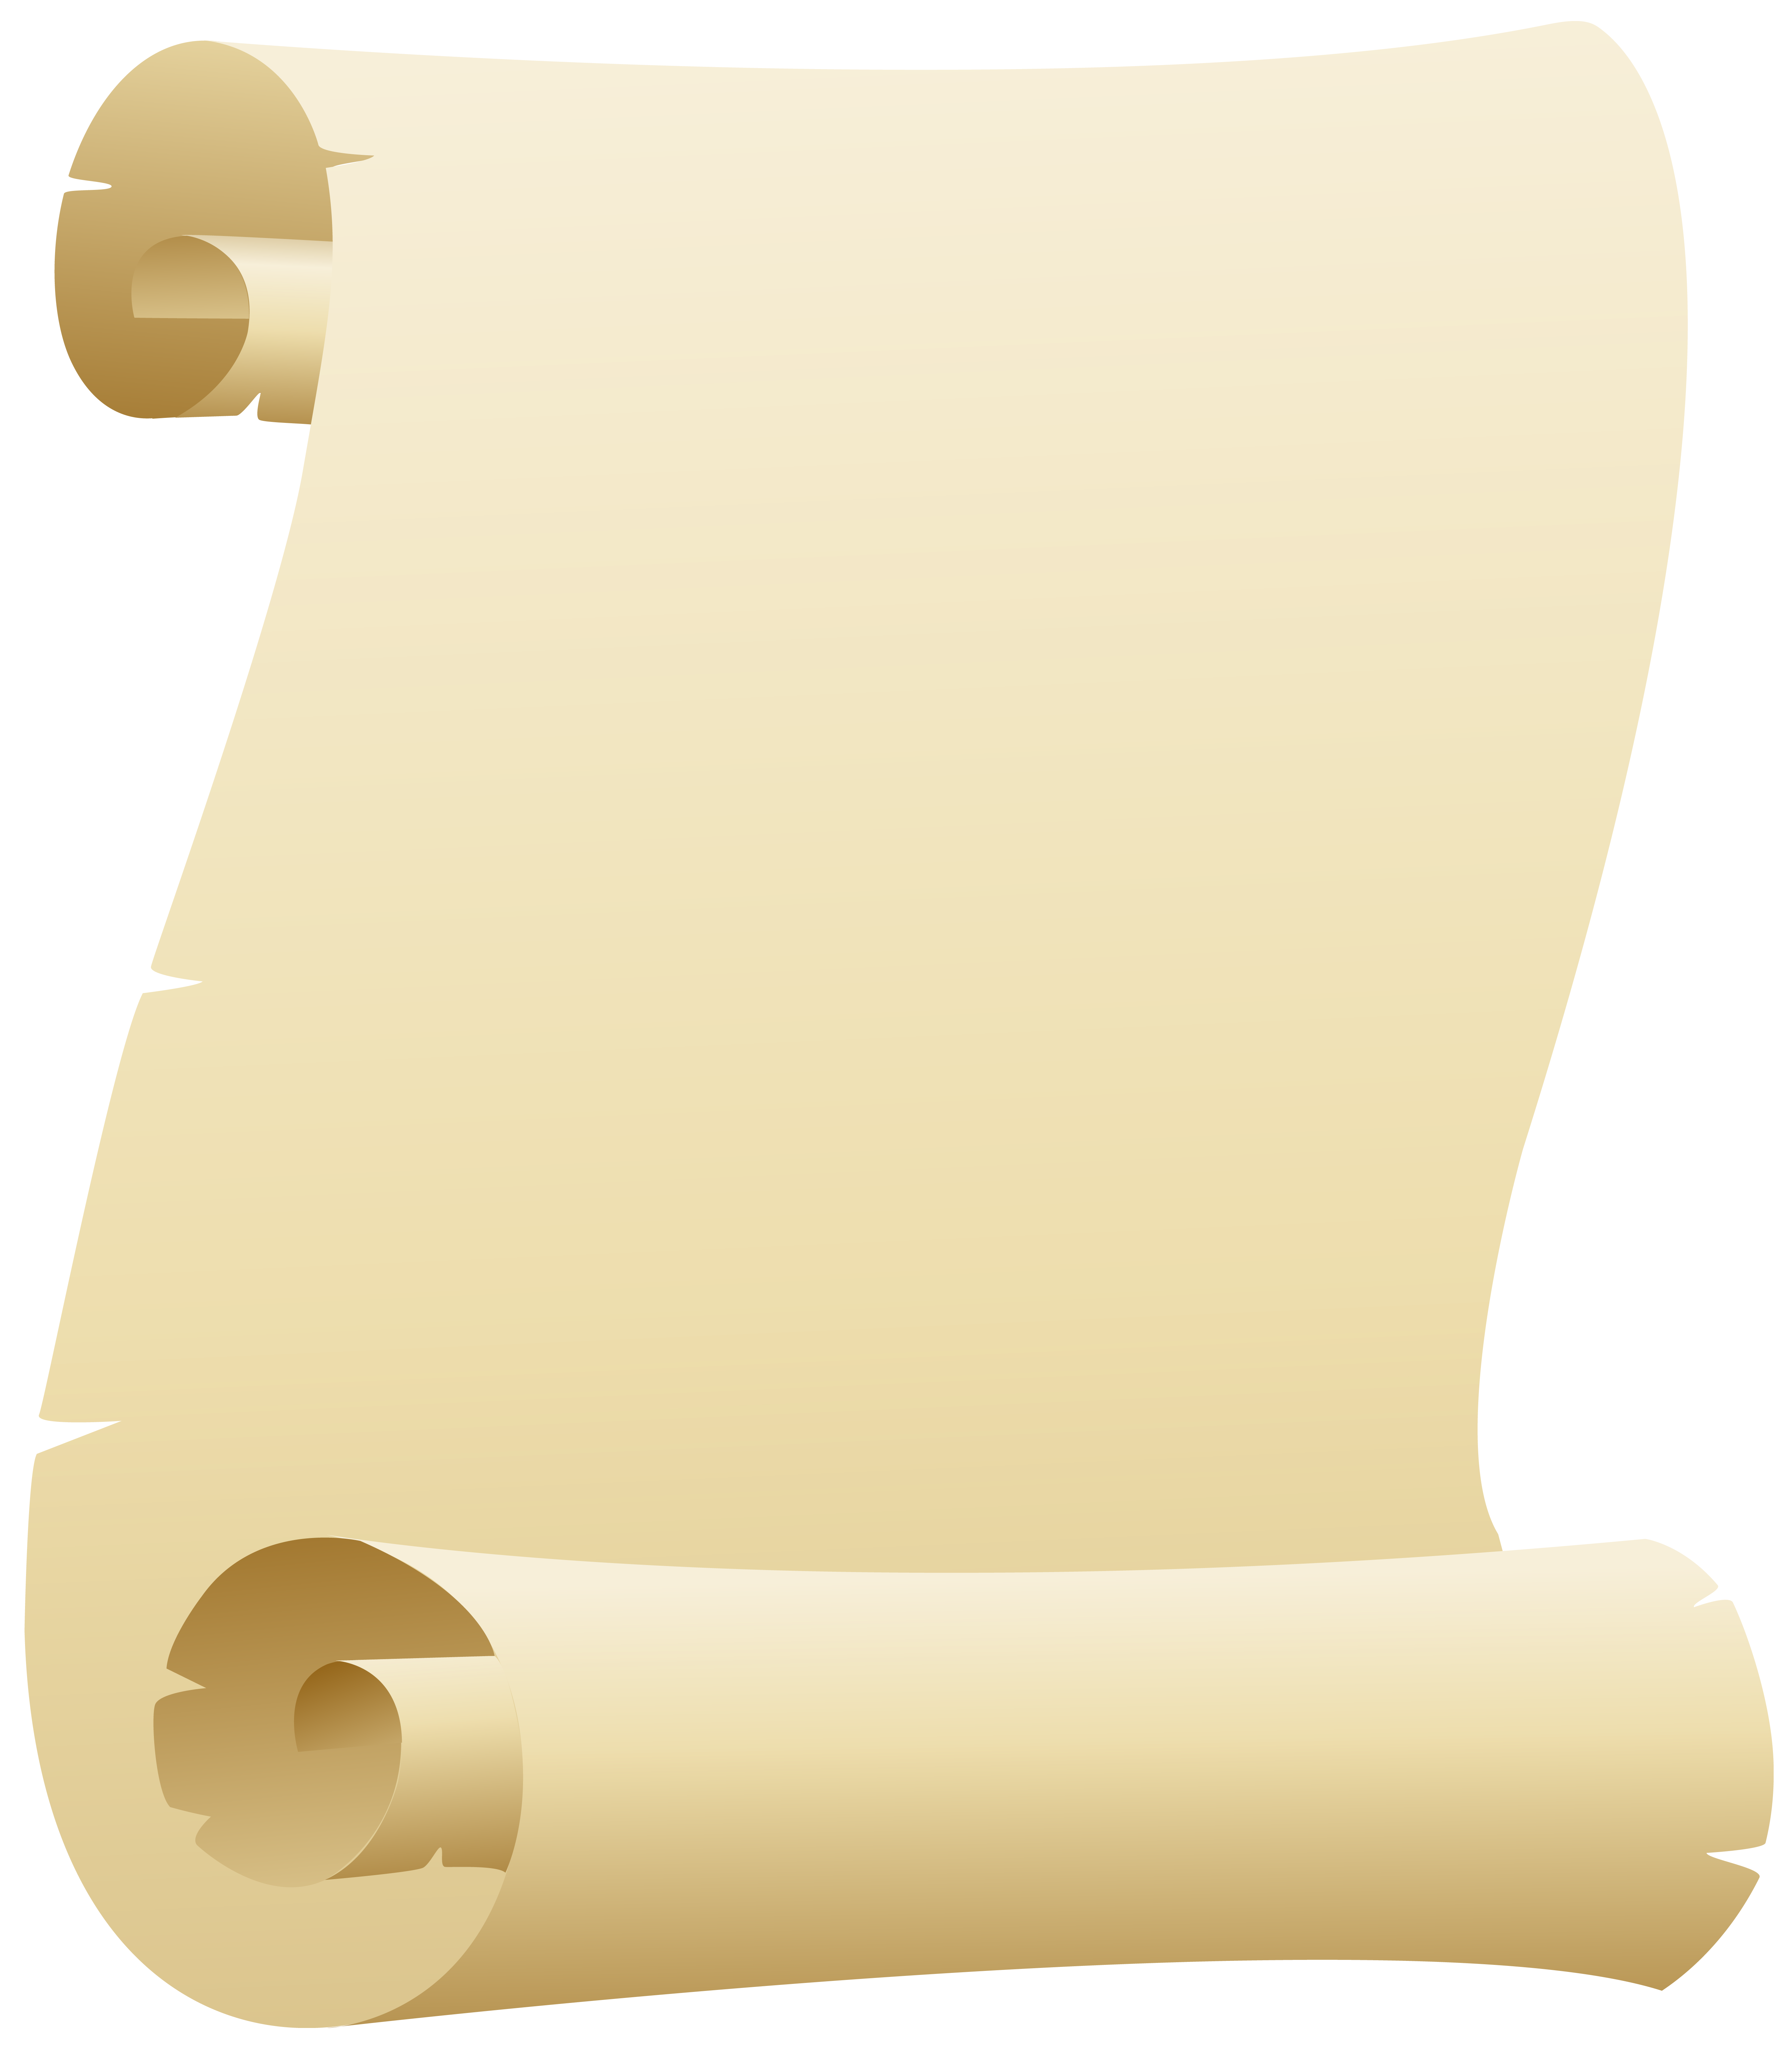 Scroll Clipart PNG Image.